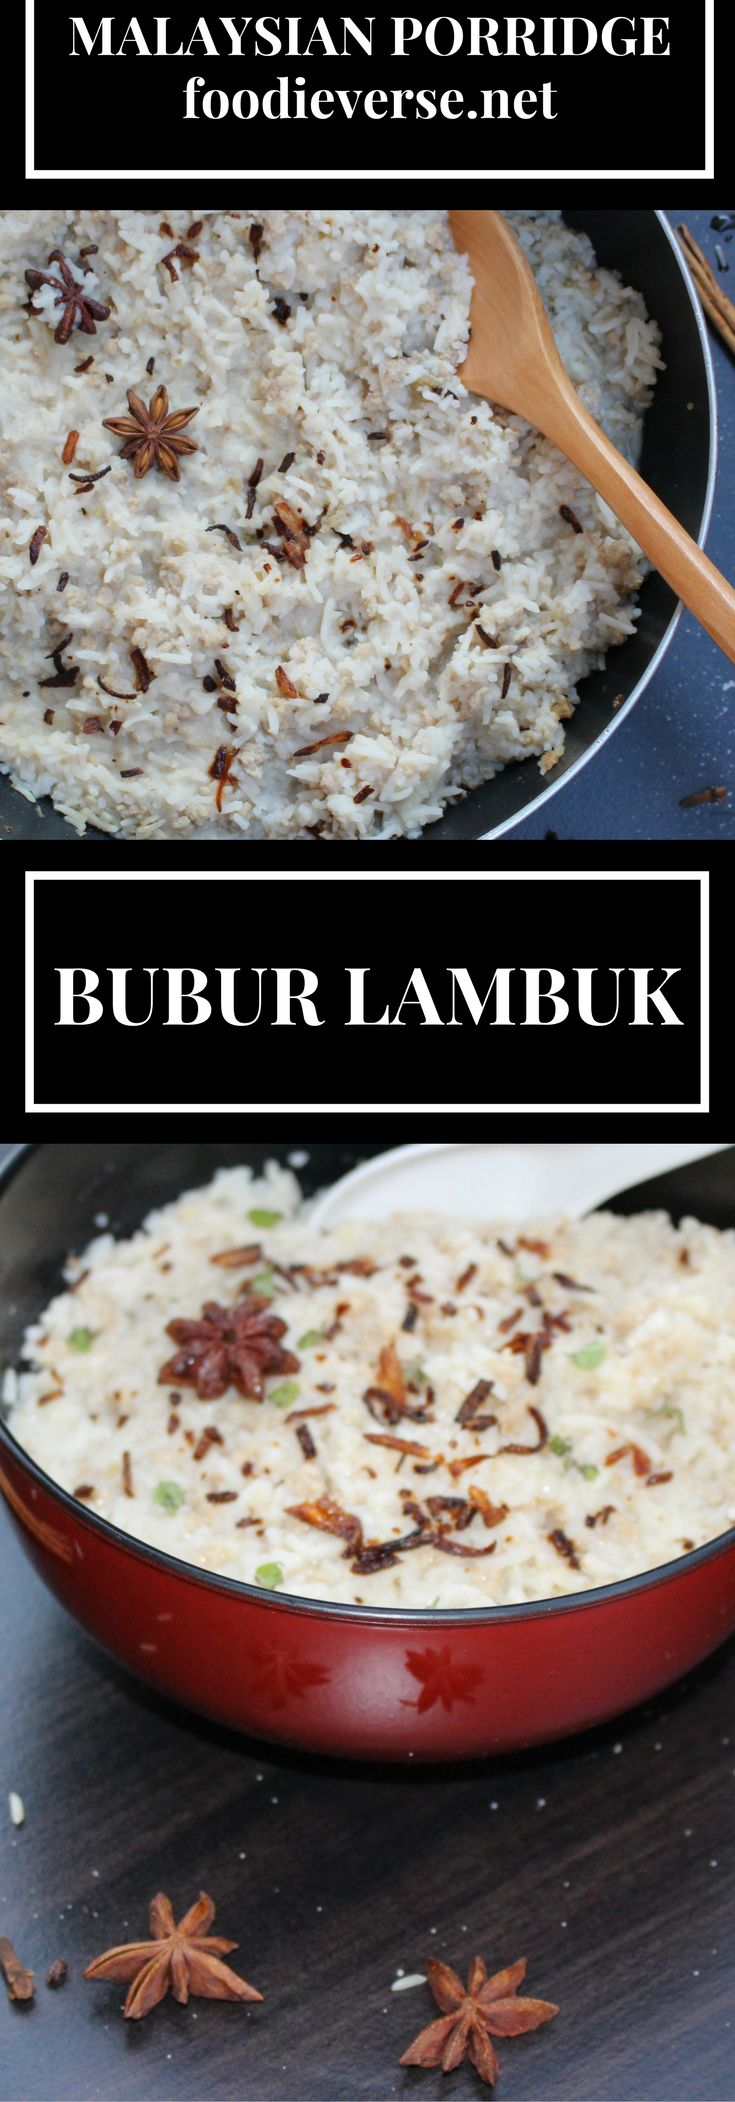 Bubur Lambuk is a Malaysian rice porridge that is traditionally enjoyed during Ramadan. Lemongrass and whole spices transform this to a comforting dish.